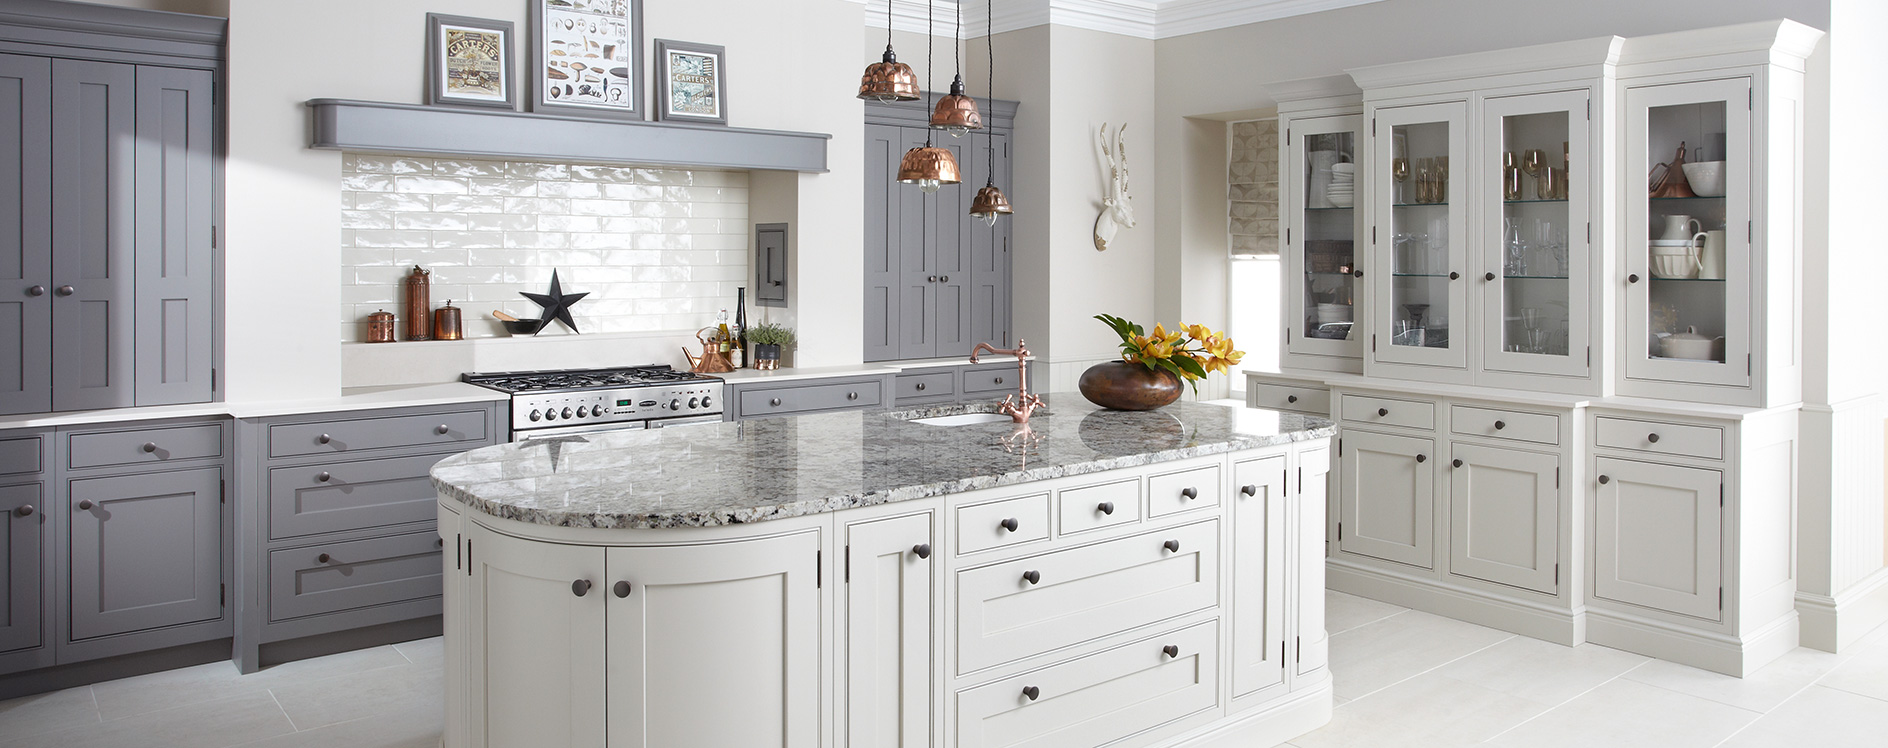 Kitchens wickes enchanting home design for Kitchen remodel trends